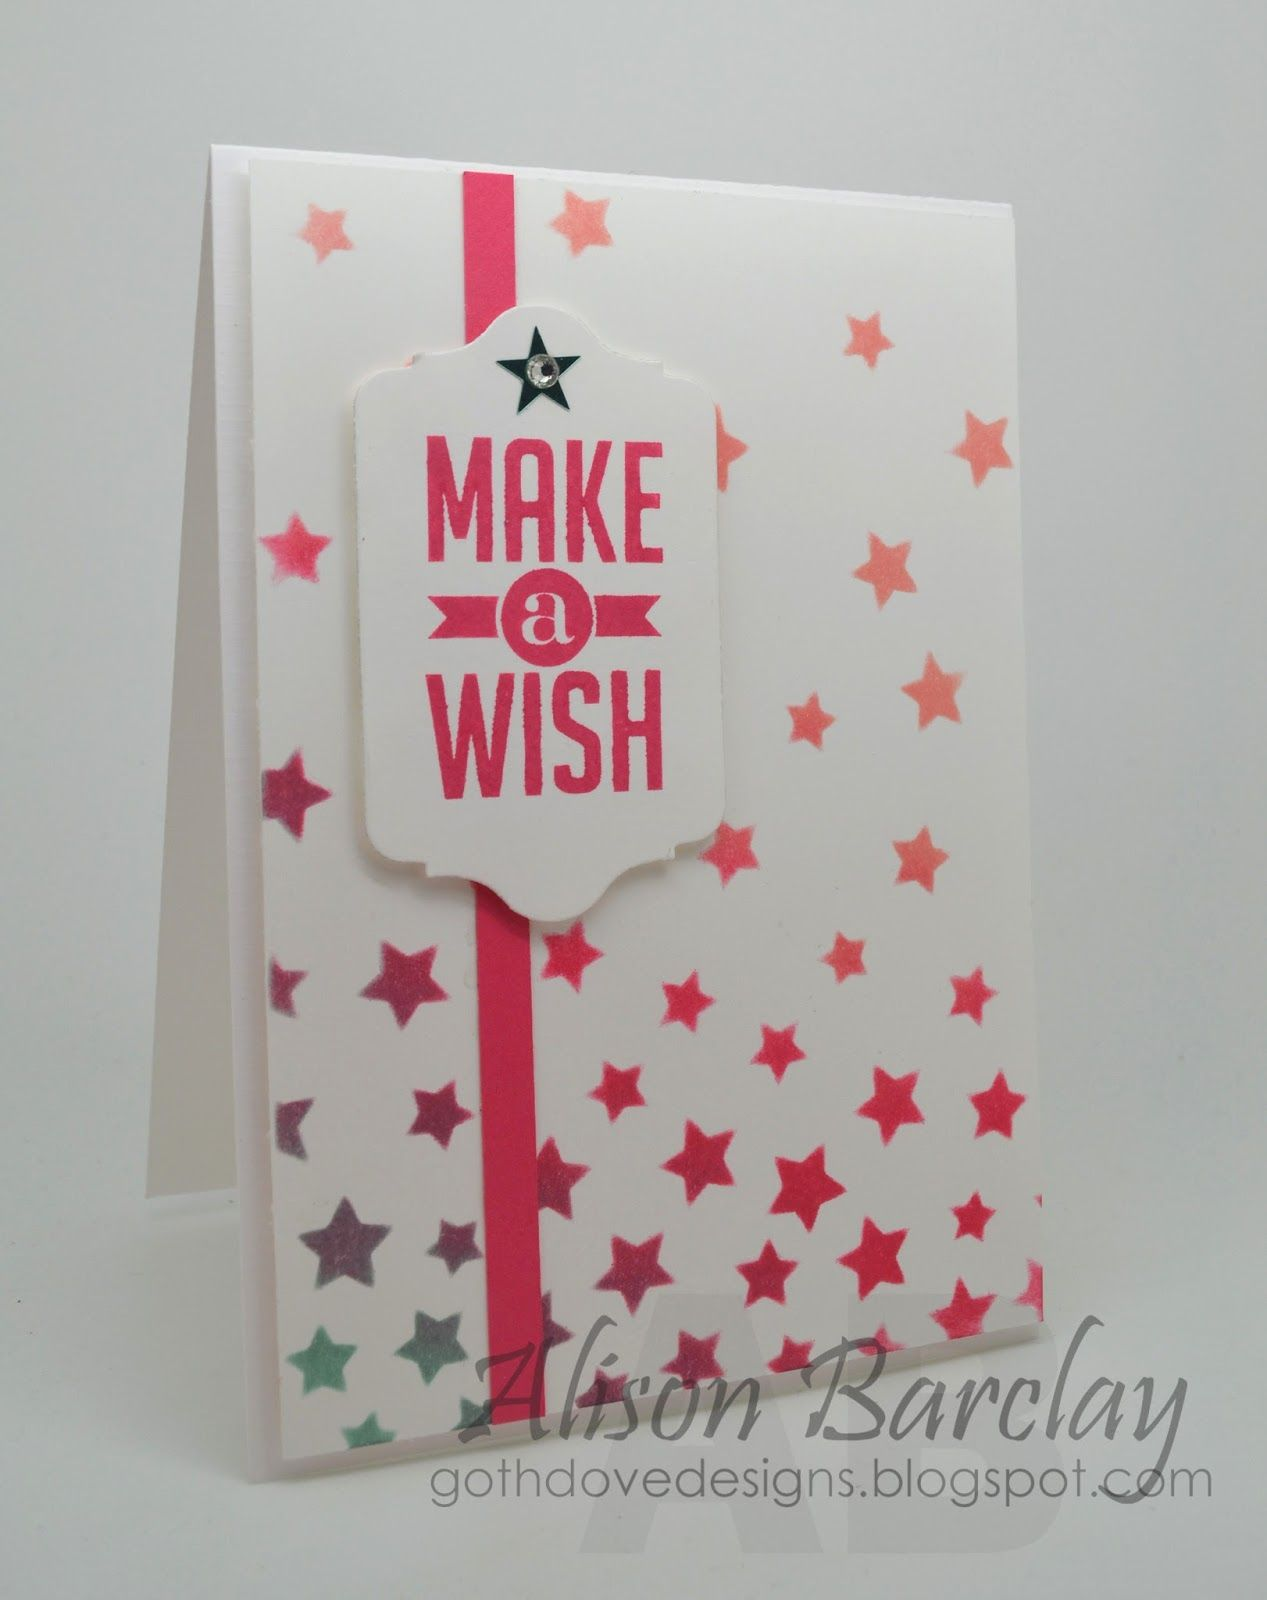 Superb Card Making Ideas In Australia Part - 4: A Blog About Stampinu0027 Up! Australia, Cardmaking, And Pretty Things Made From